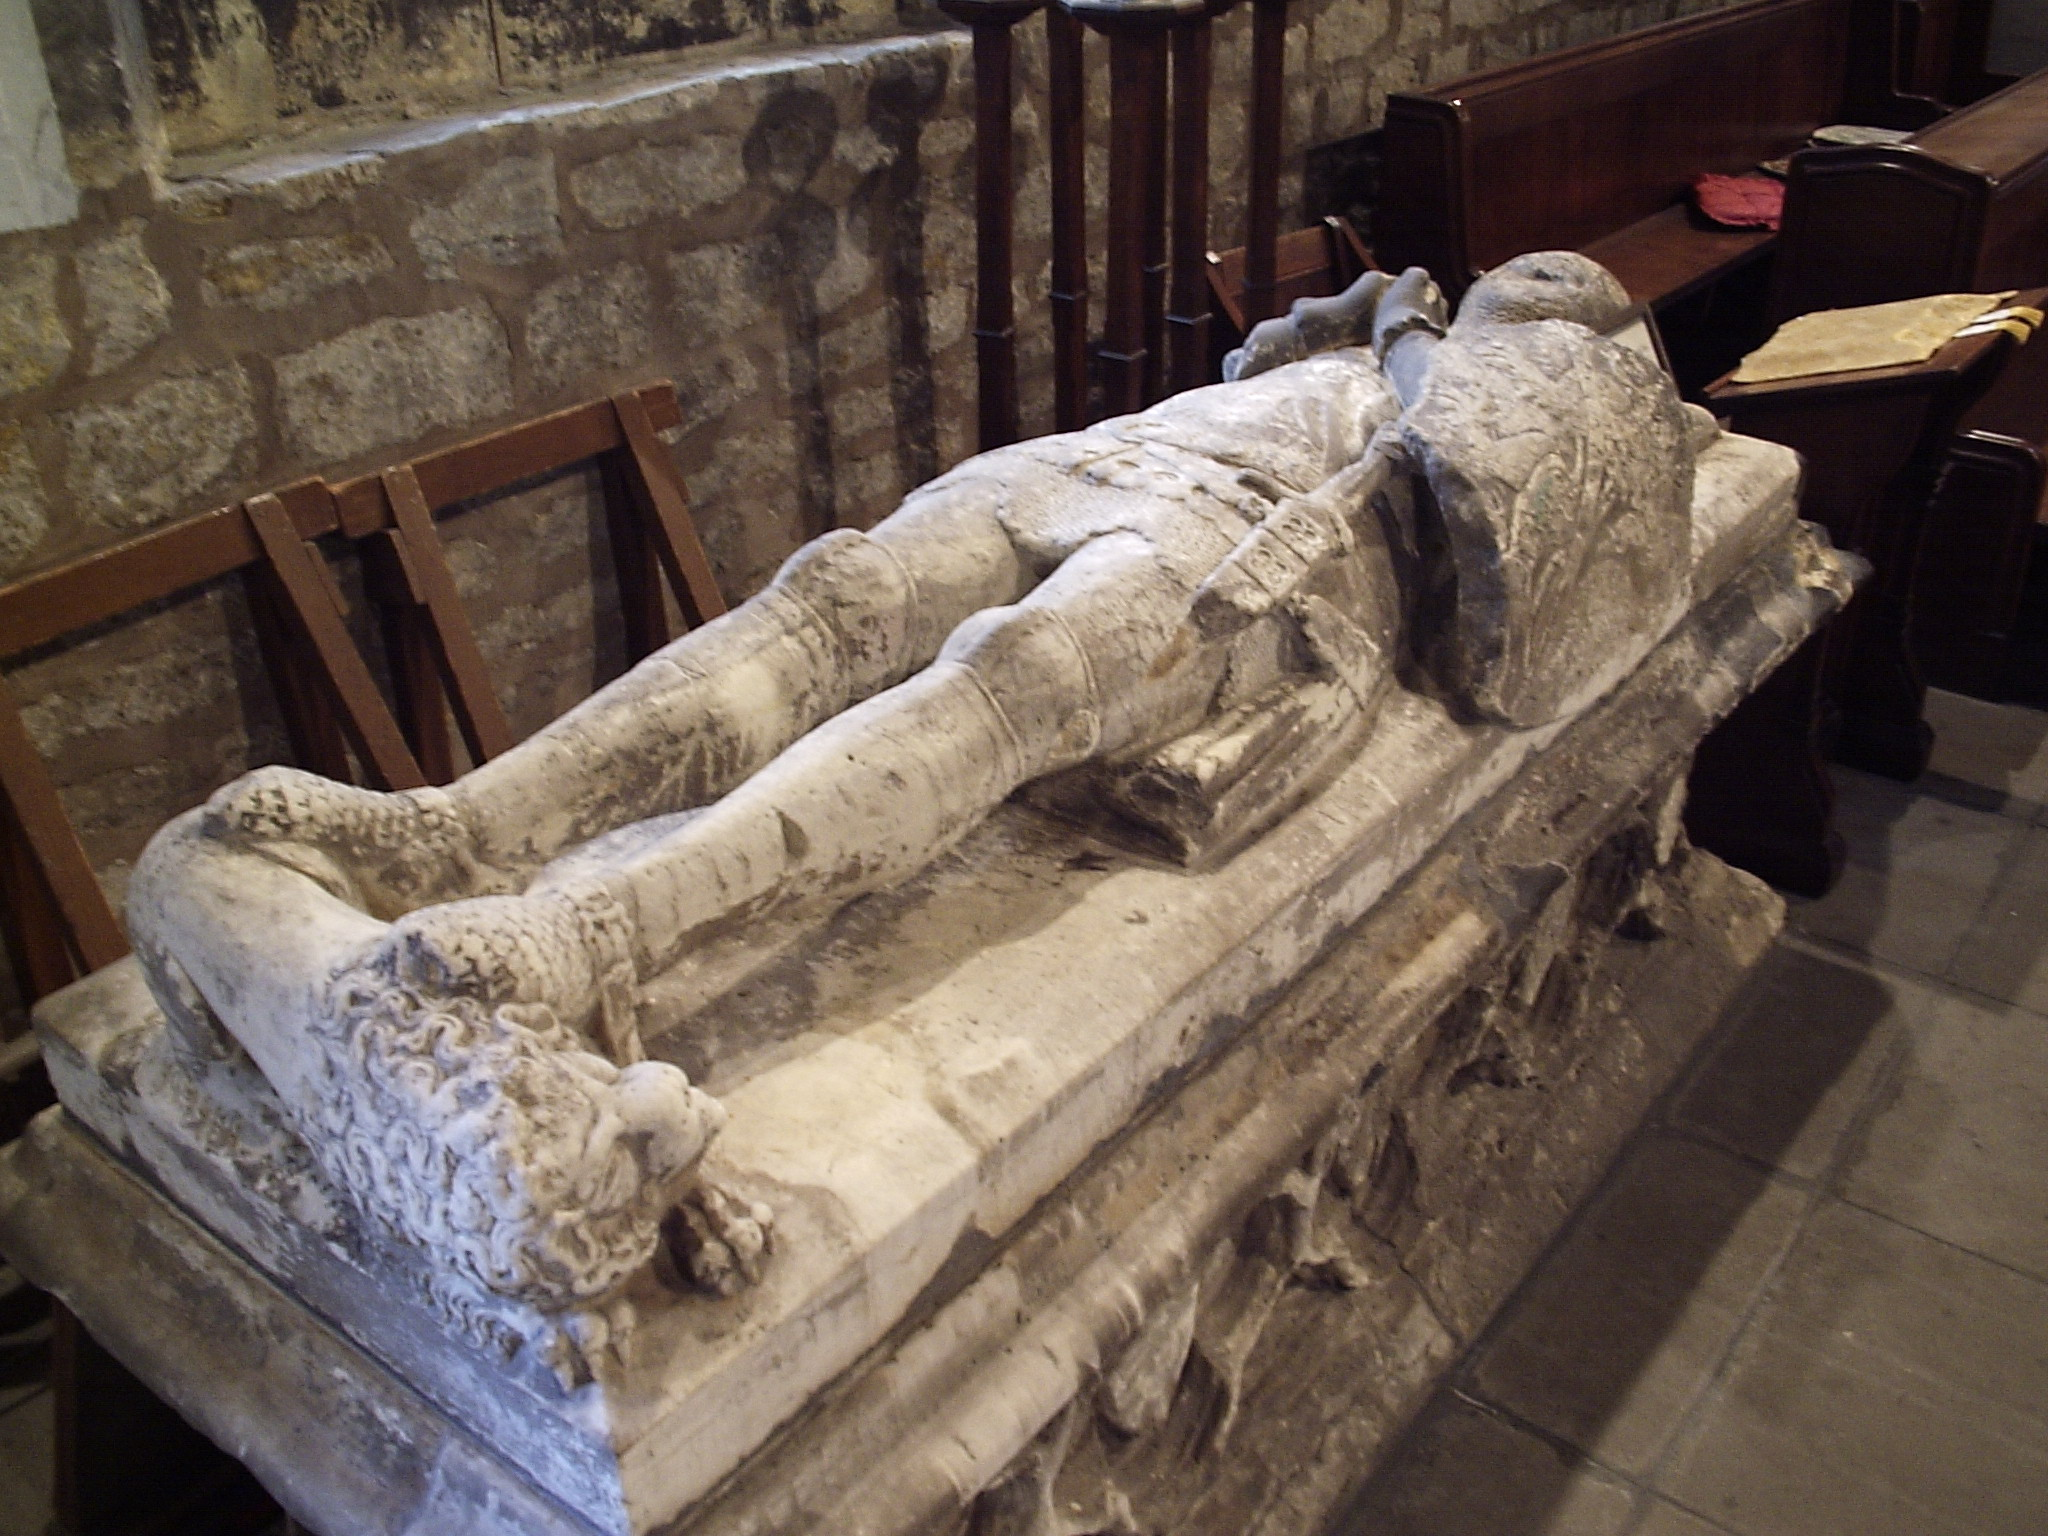 The Royal Funerary and Burial Ceremonies of Medieval English Kings